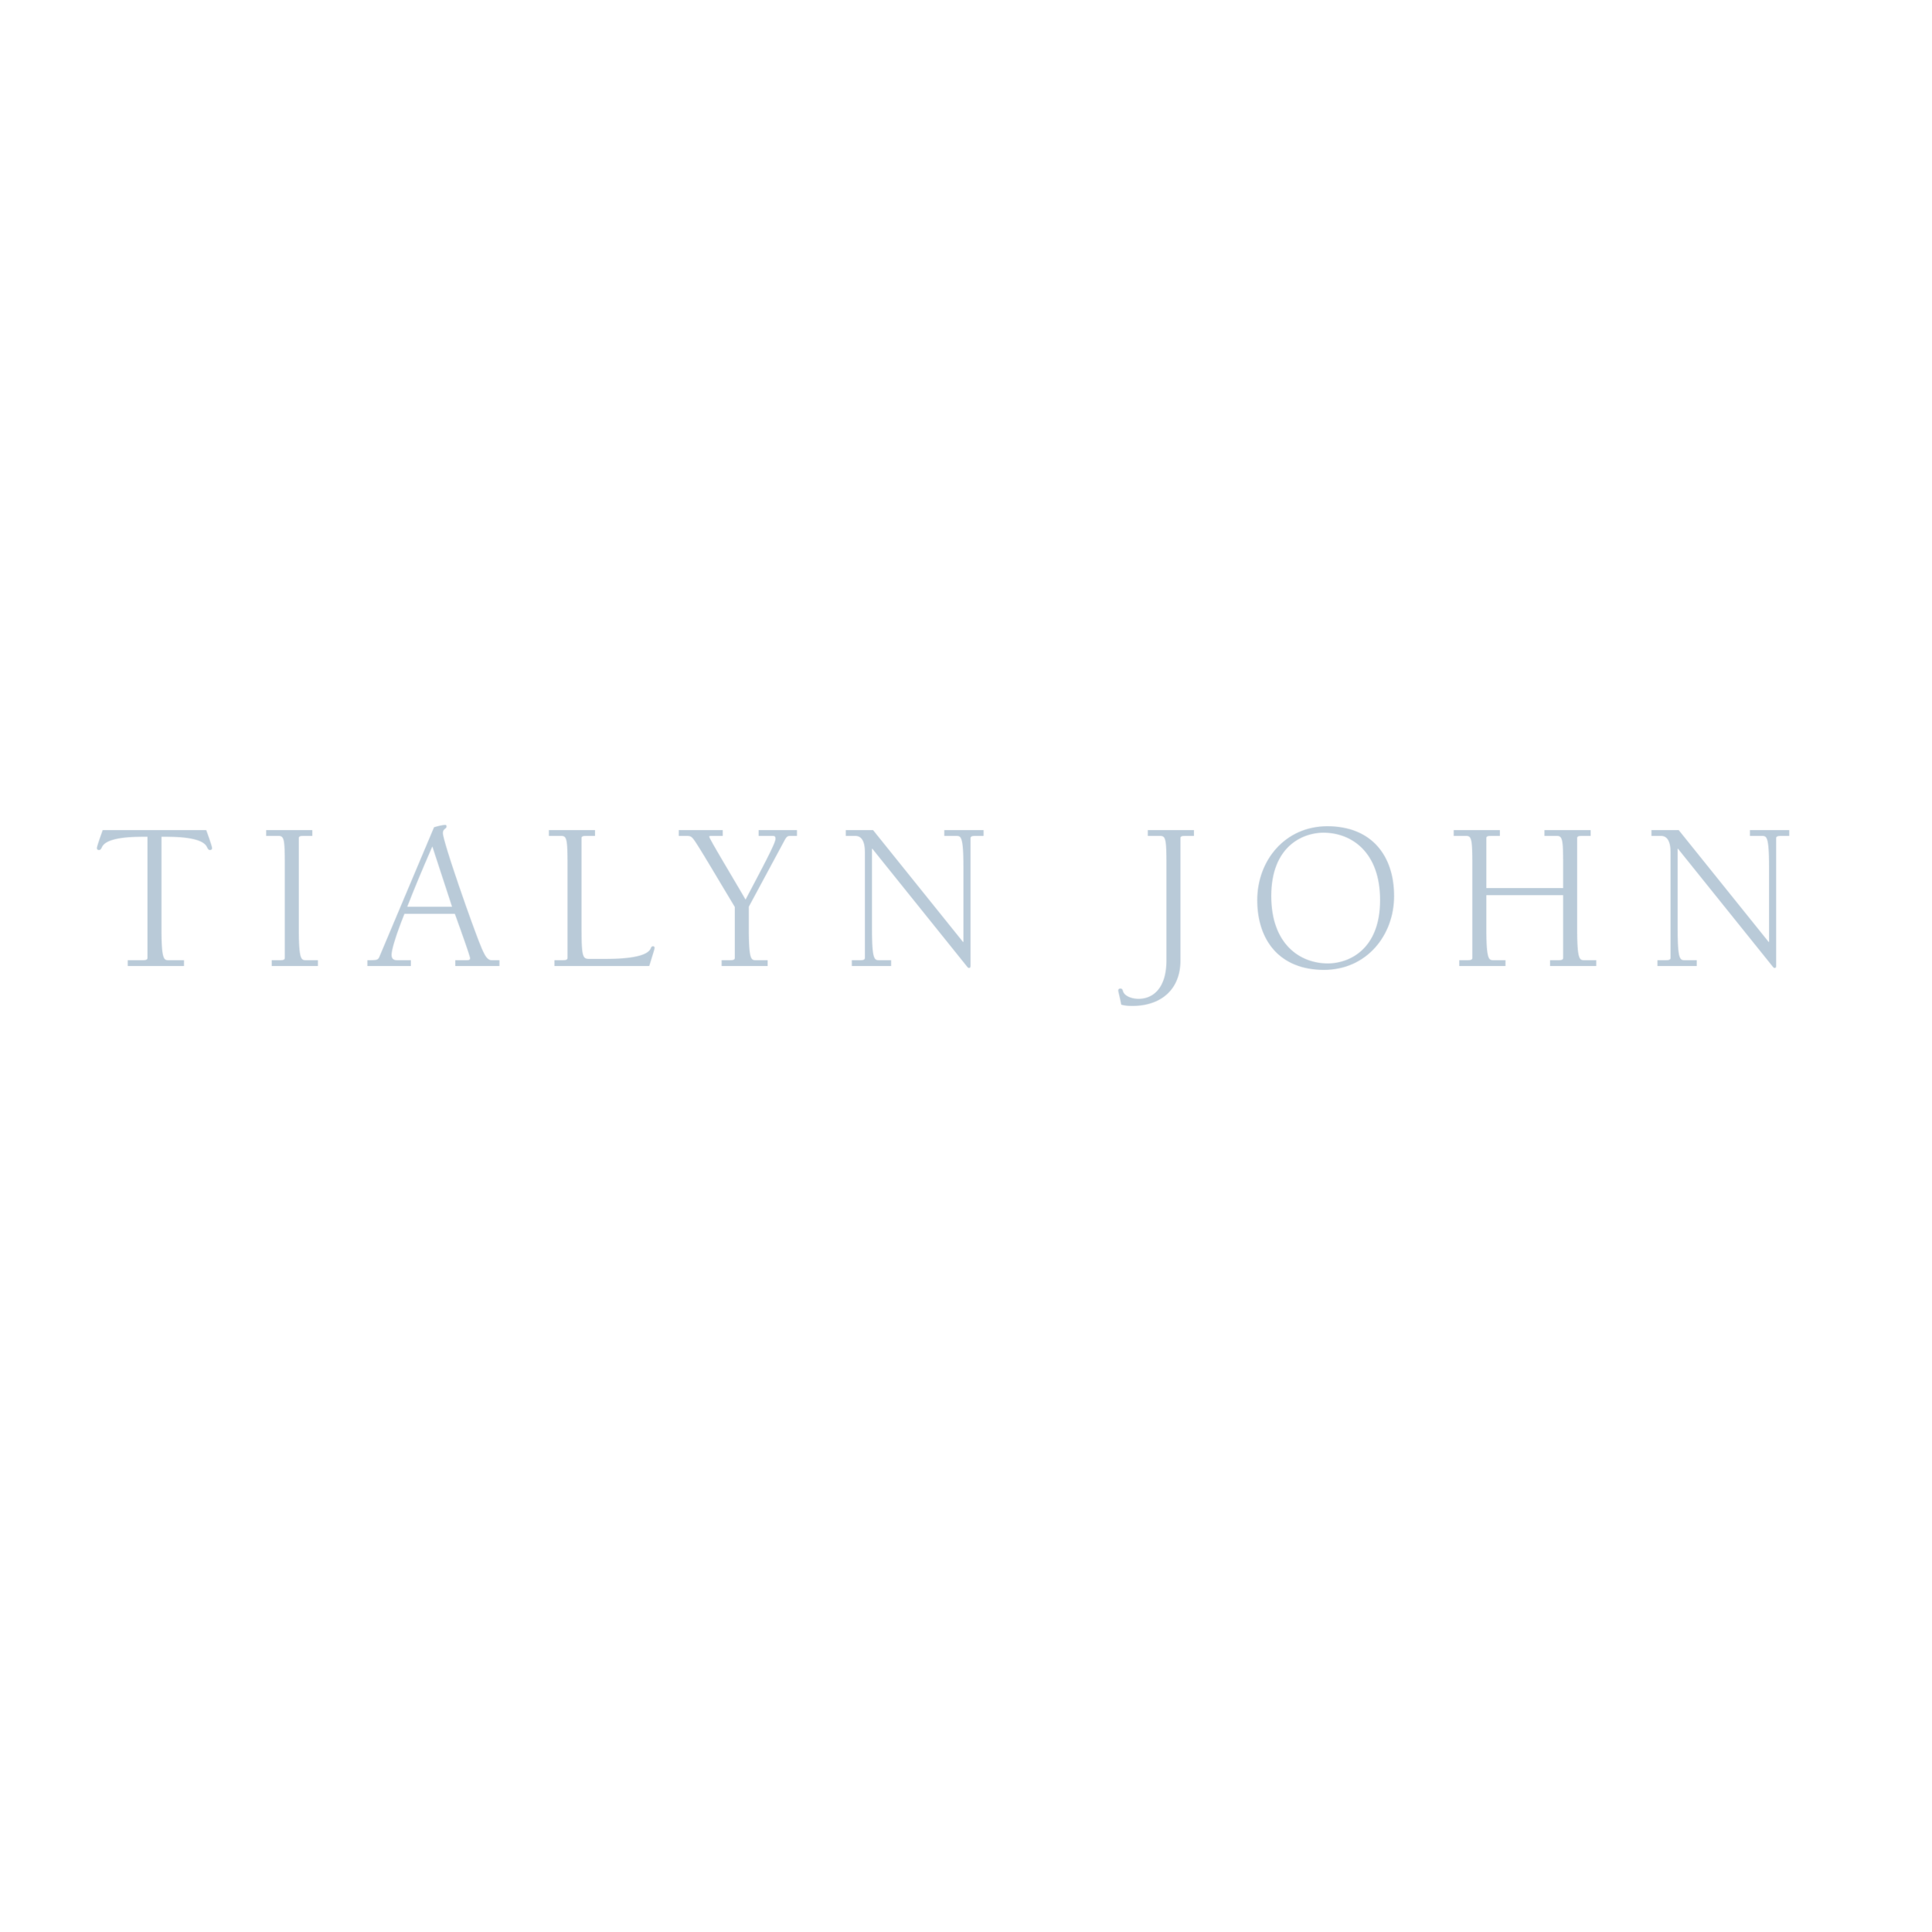 Tialyn John Photography | Brand and Website by Magnolia Creative Studio